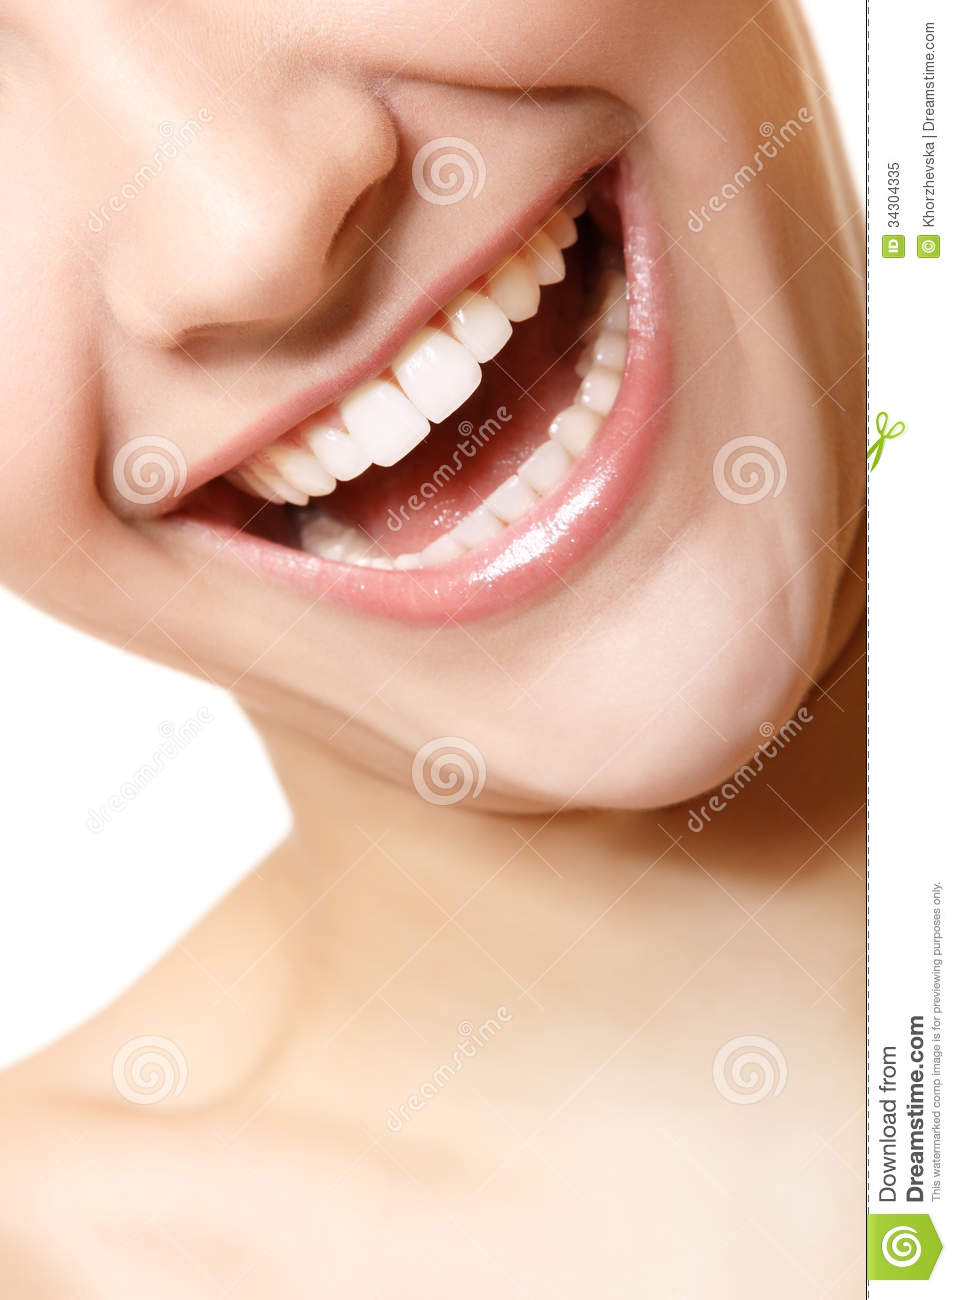 Perfect Smile Of Beautiful Woman With Great Healthy White